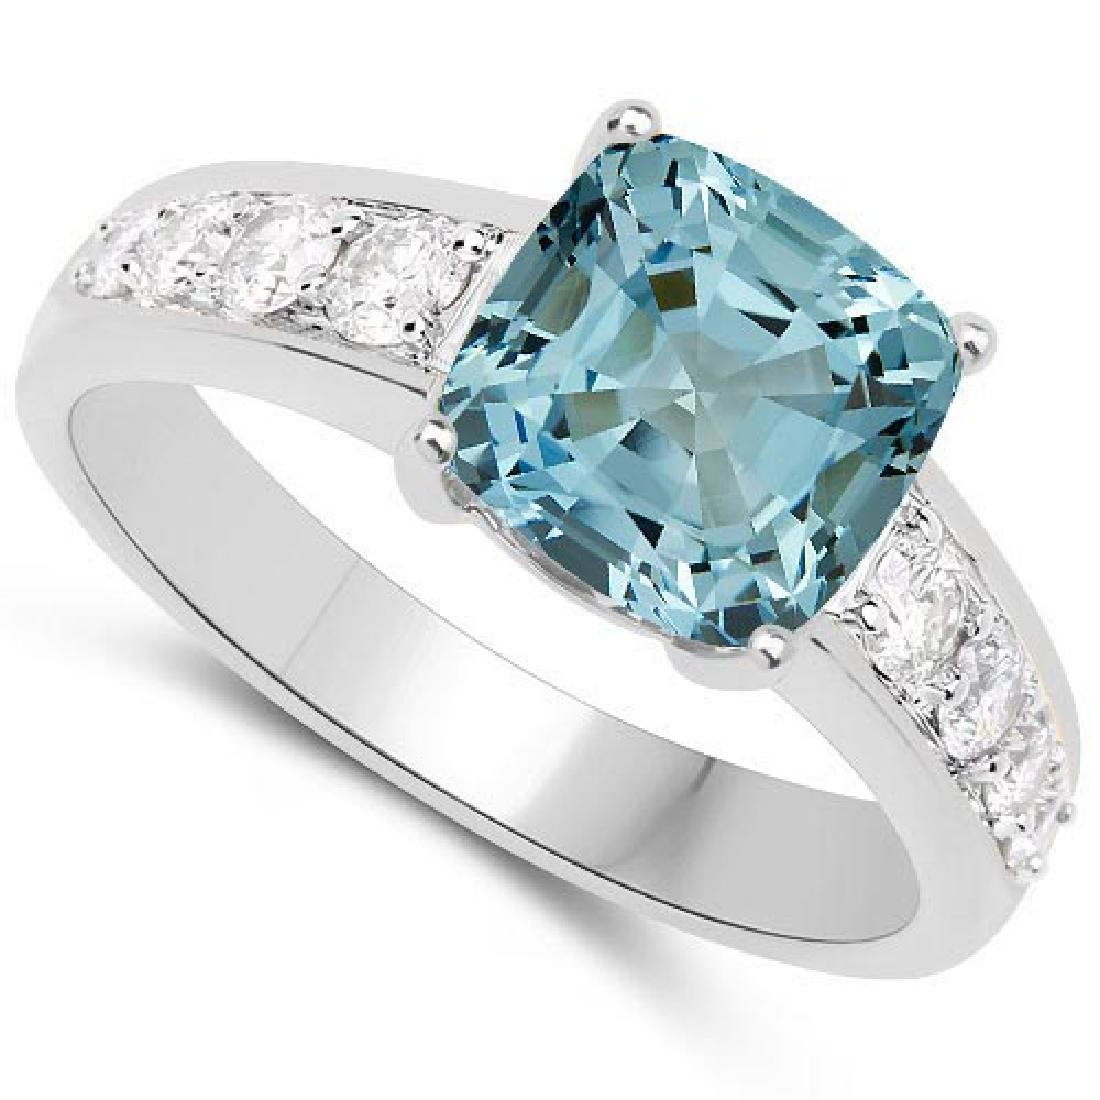 Certified 2.45 CTW Genuine Bule Topaz And Diamond 14K W